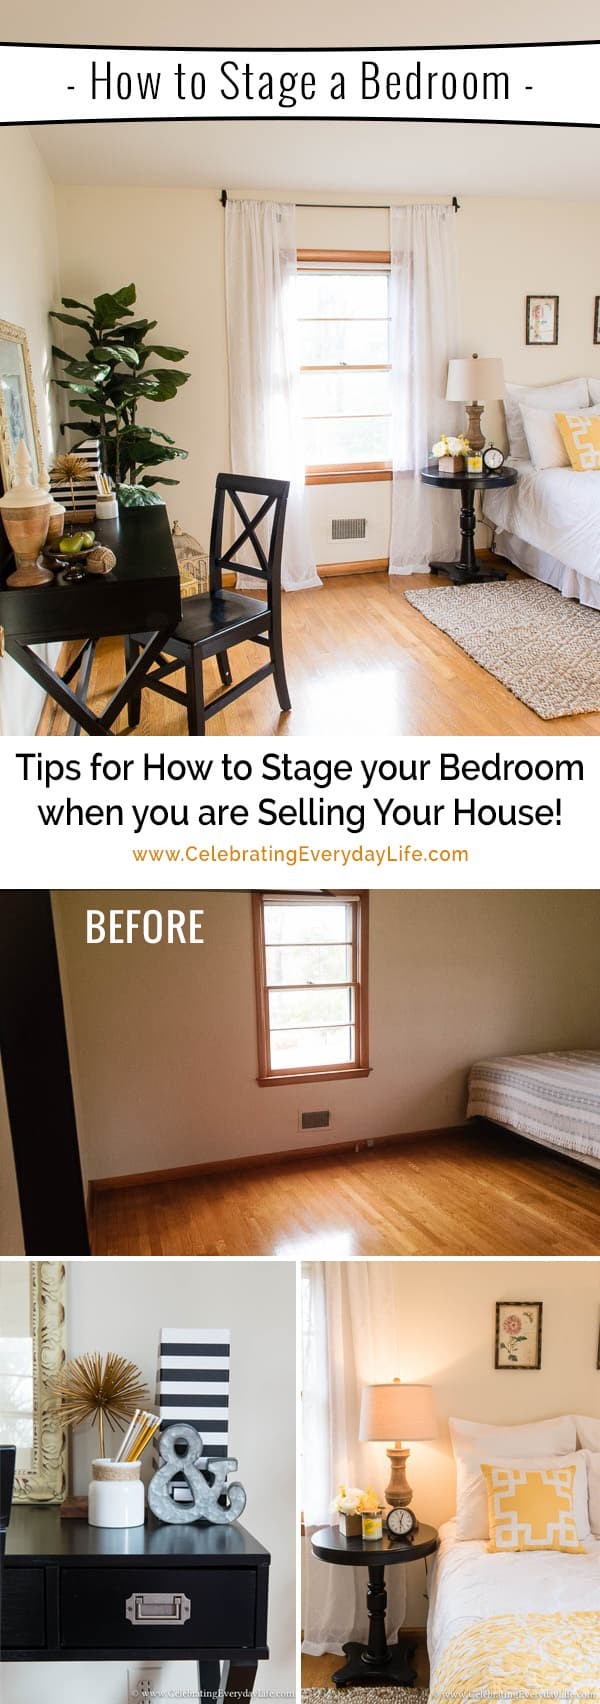 How To Stage A House Prior To Selling: More Tips For How To Stage A Bedroom To Sell NOW